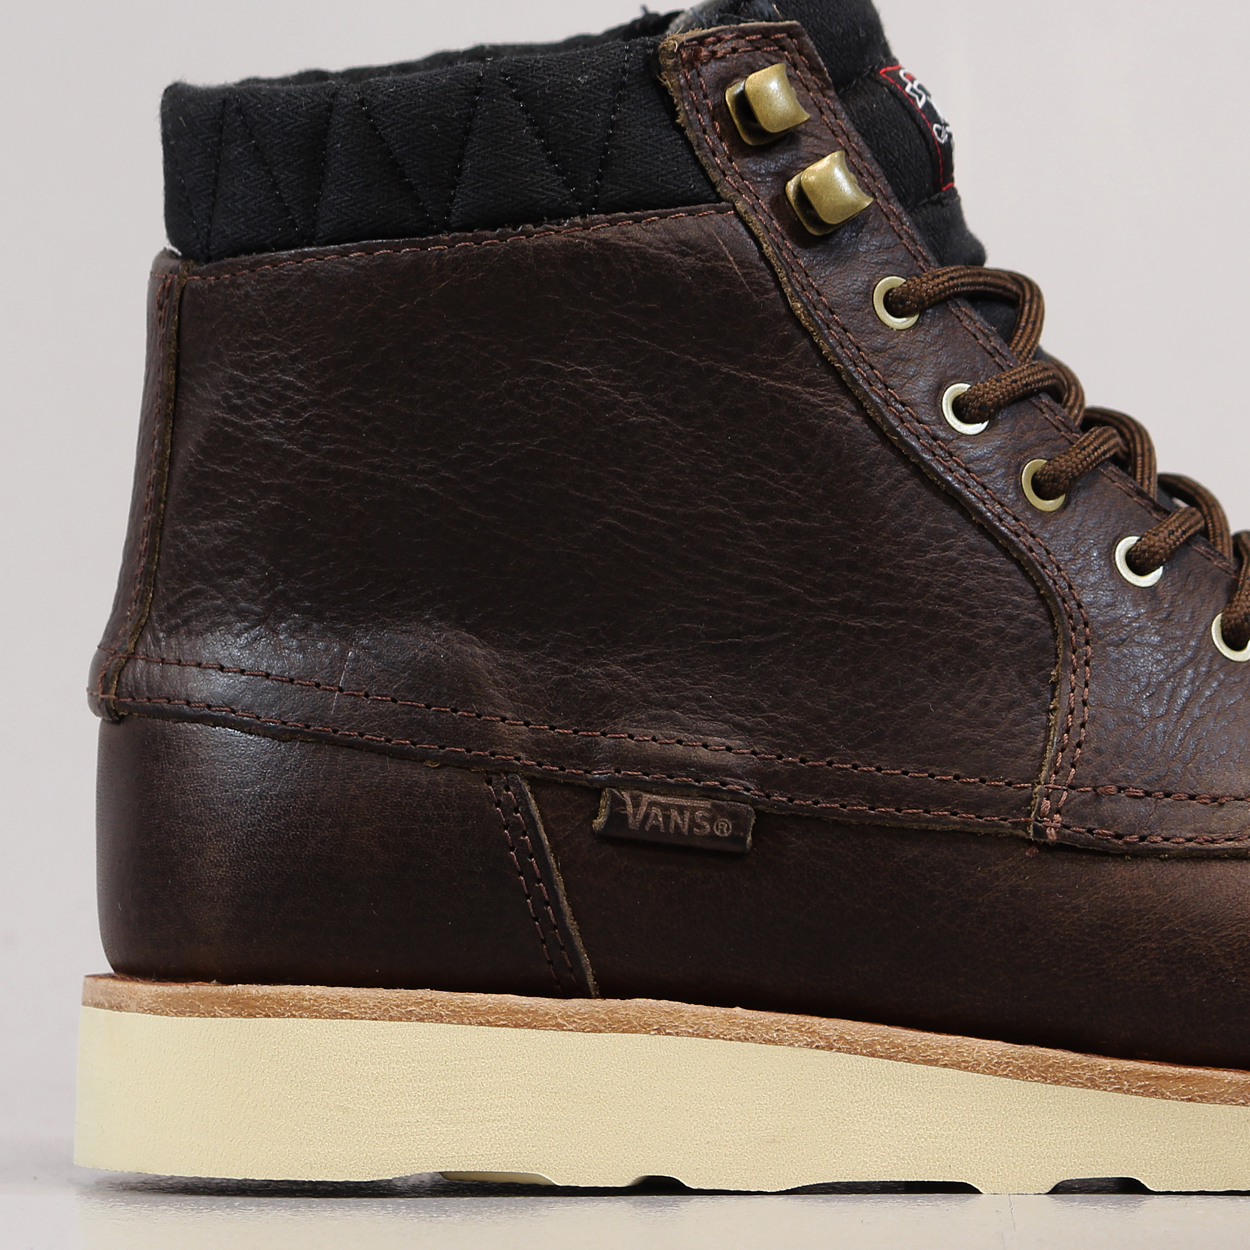 8e0d511603997c A vintage looking high top boot from Vans OTW with a grippy Vibram Christy  Sole and a lovely full grain leather upper.